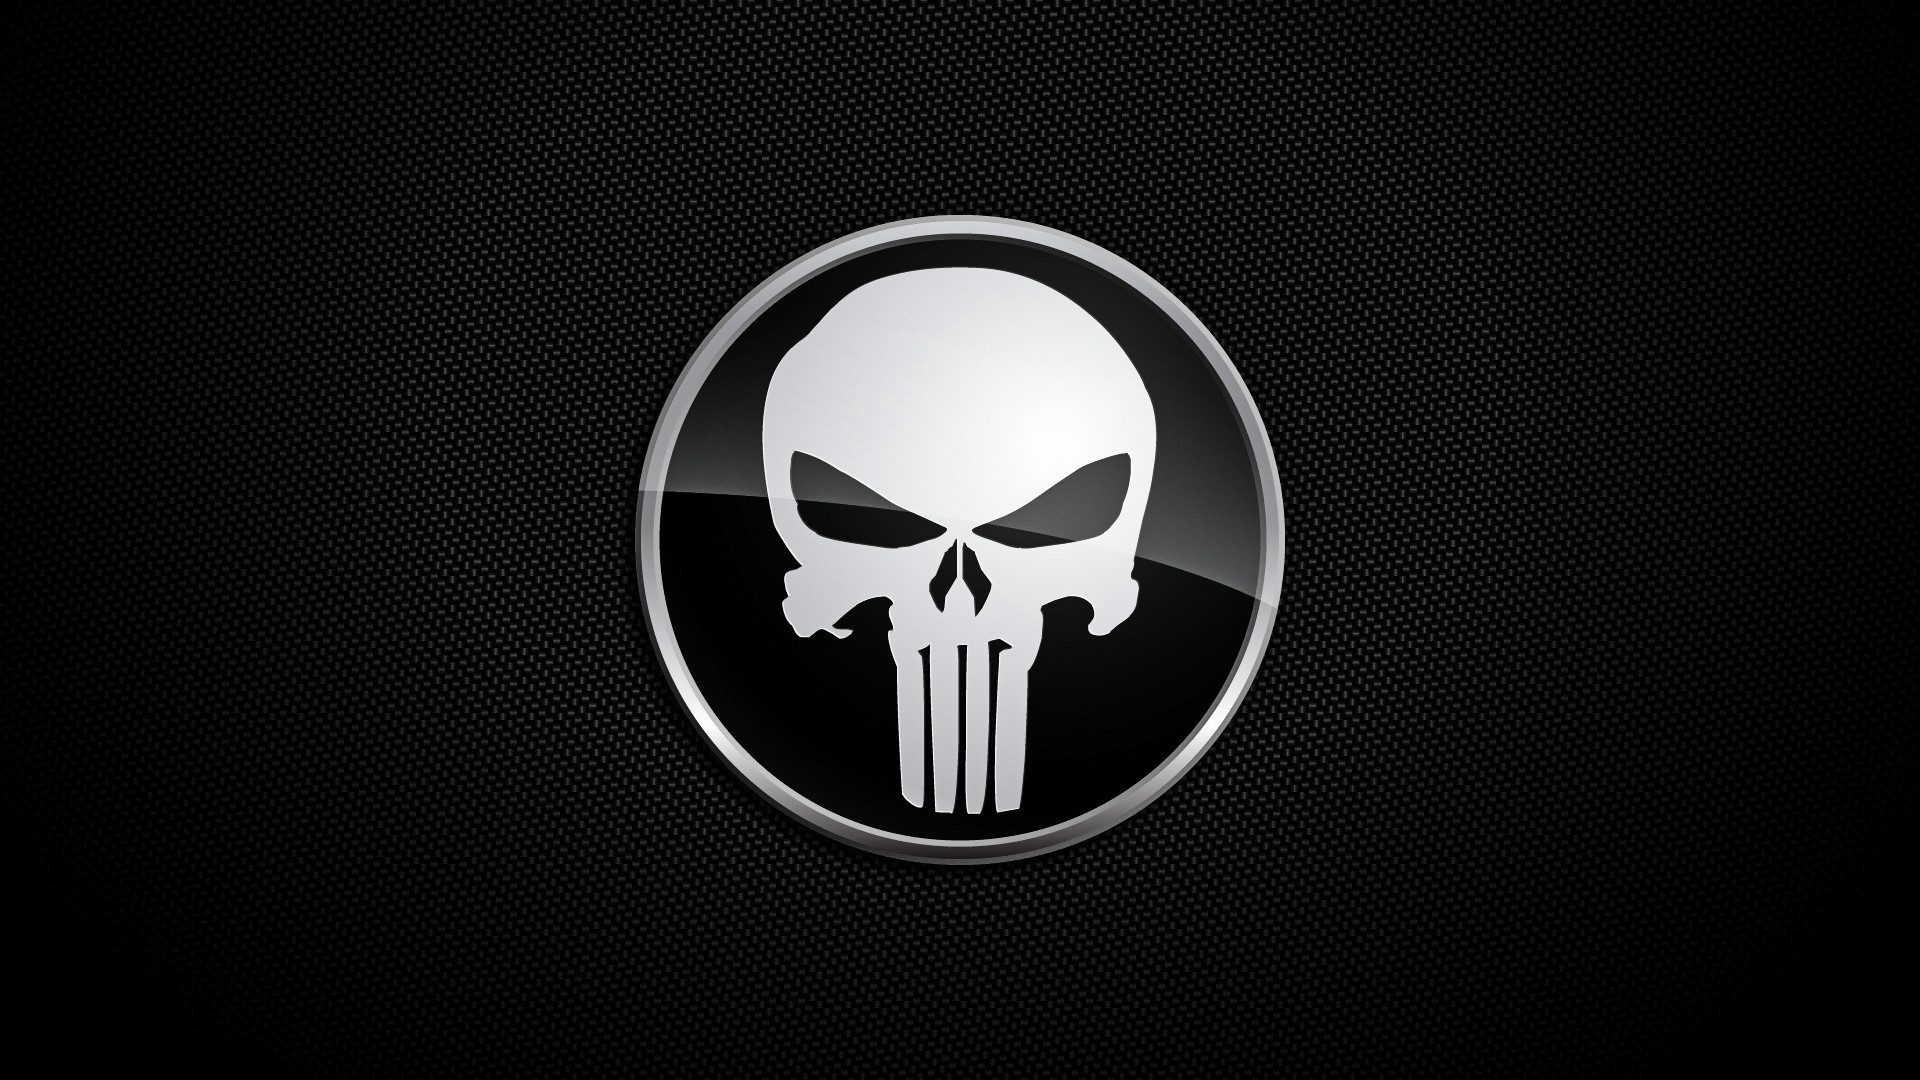 1920x1080 Skull Wallpapers High Quality Download Free